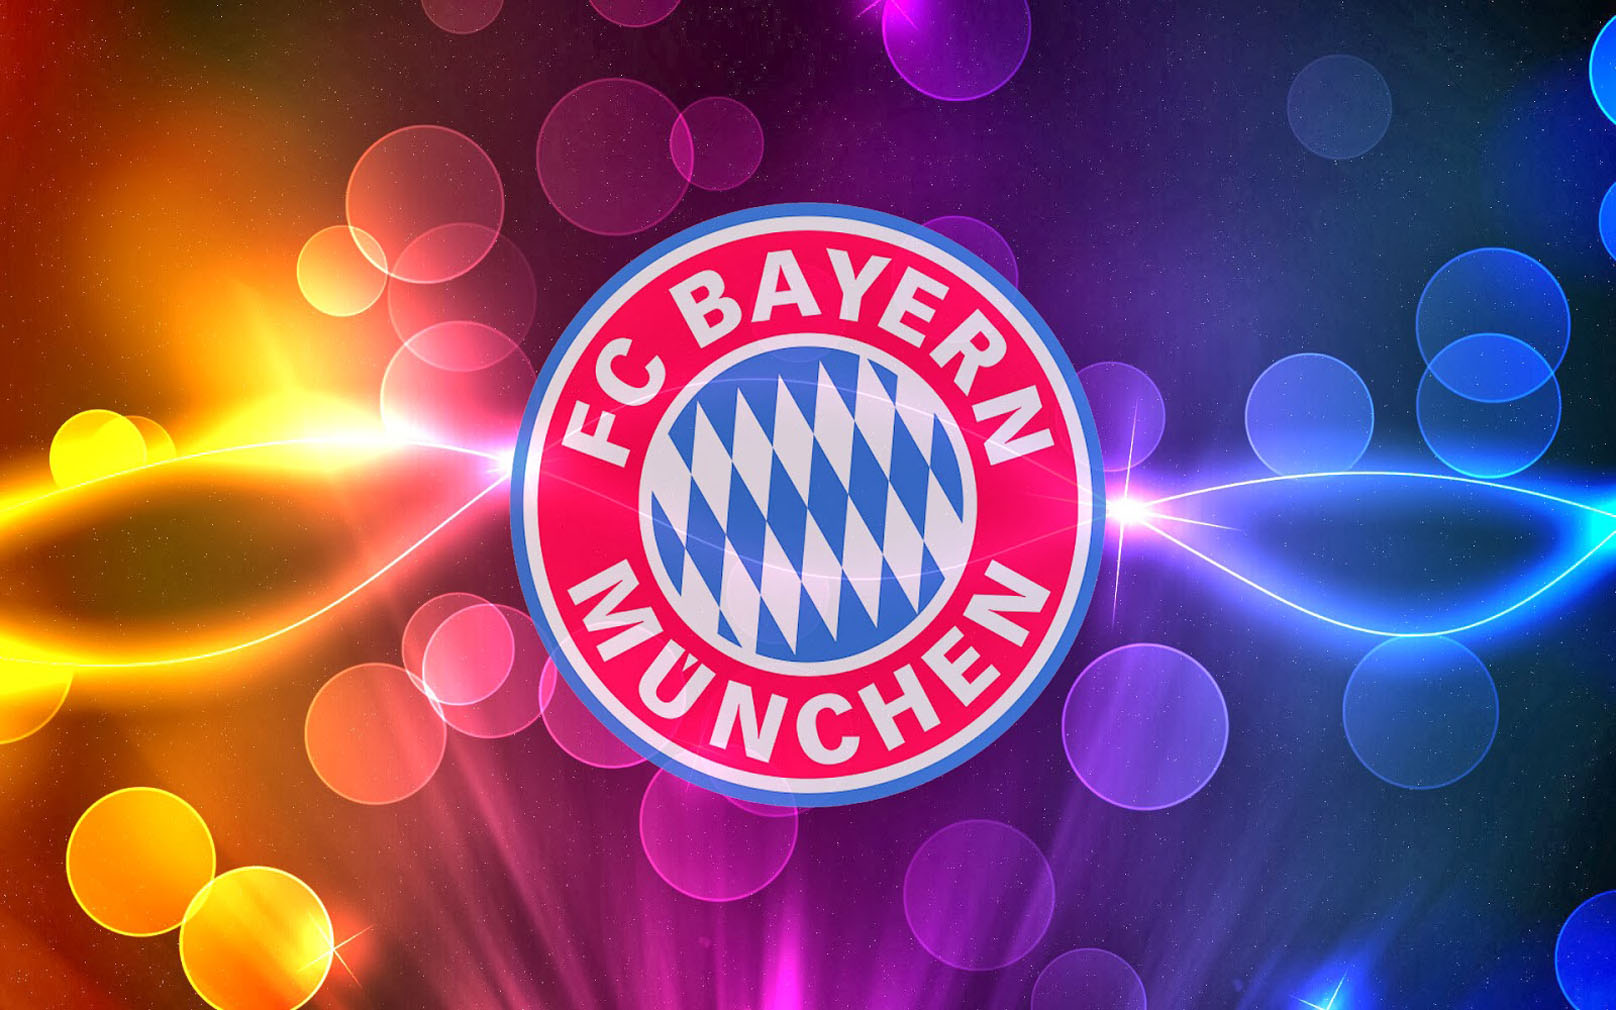 Best Hd Fc Bayern Wallpapers Px Bayern Munchen 381393 Hd Wallpaper Backgrounds Download